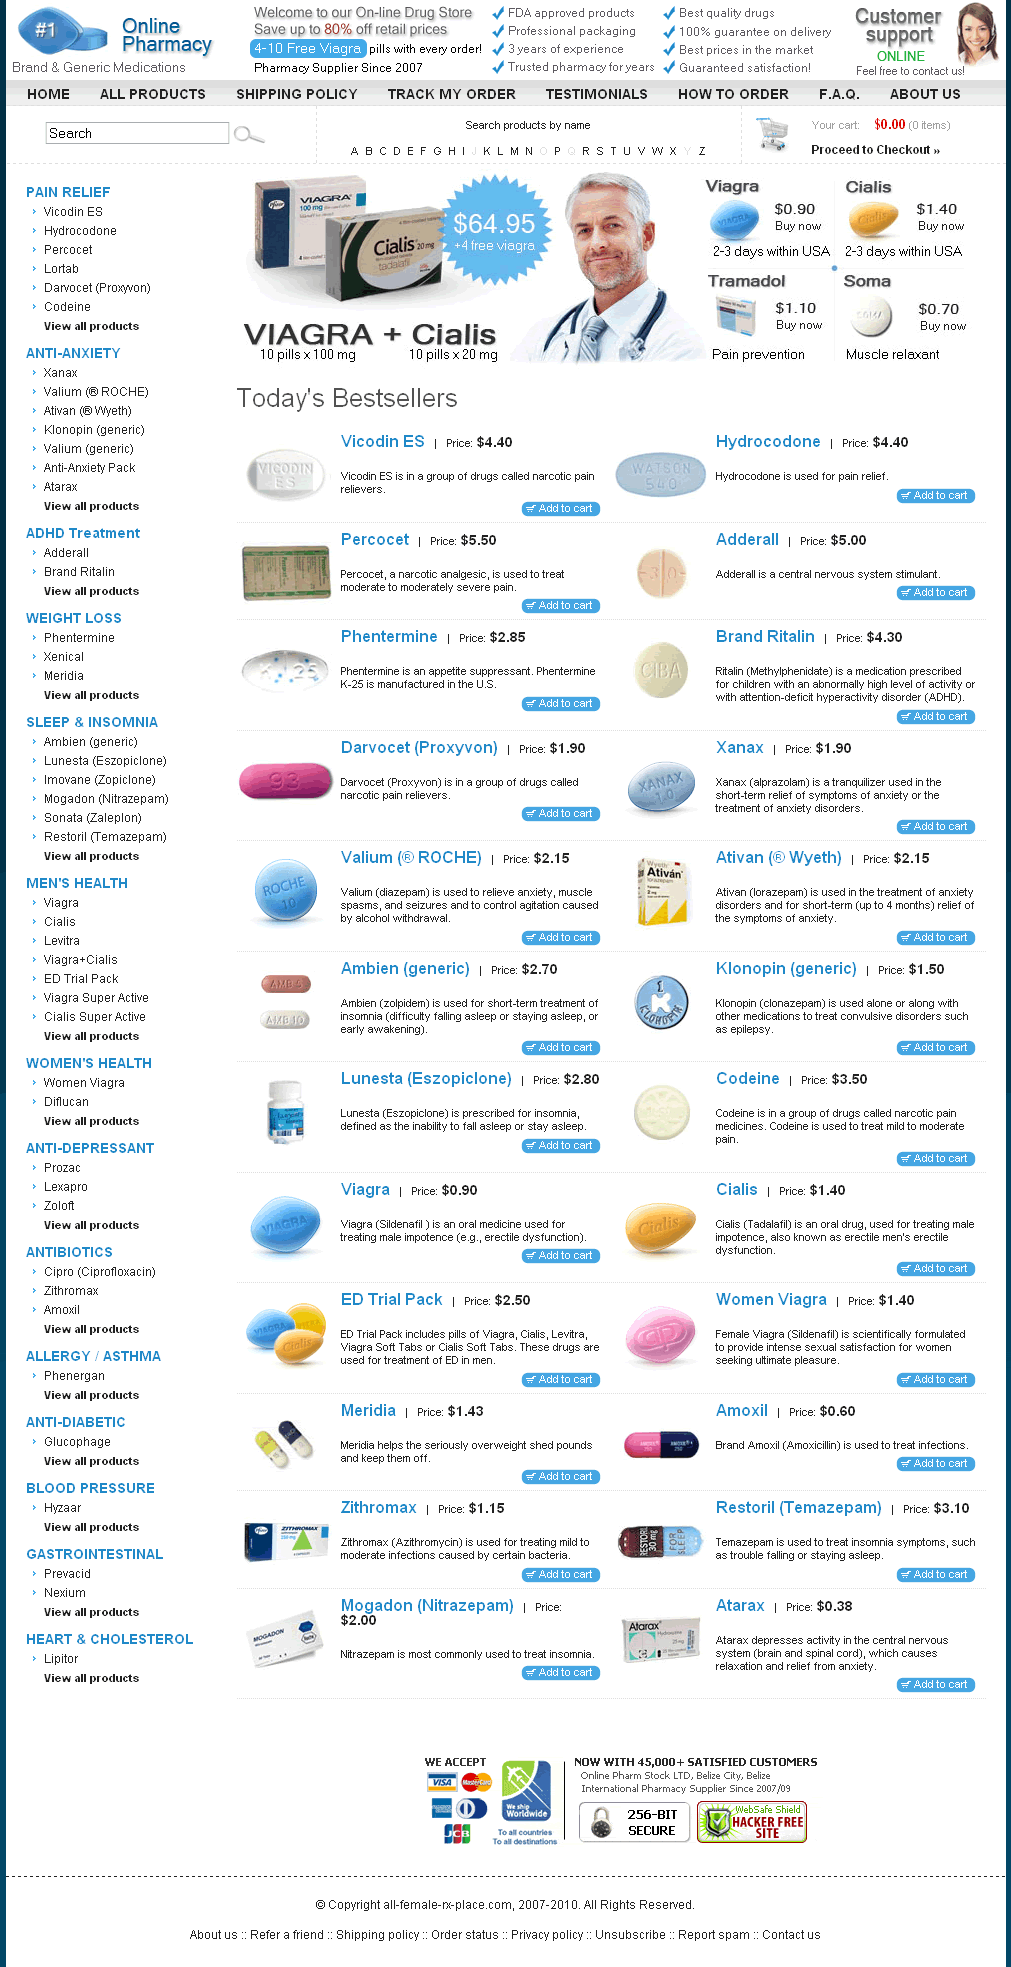 File:OnlinePharmacy.png